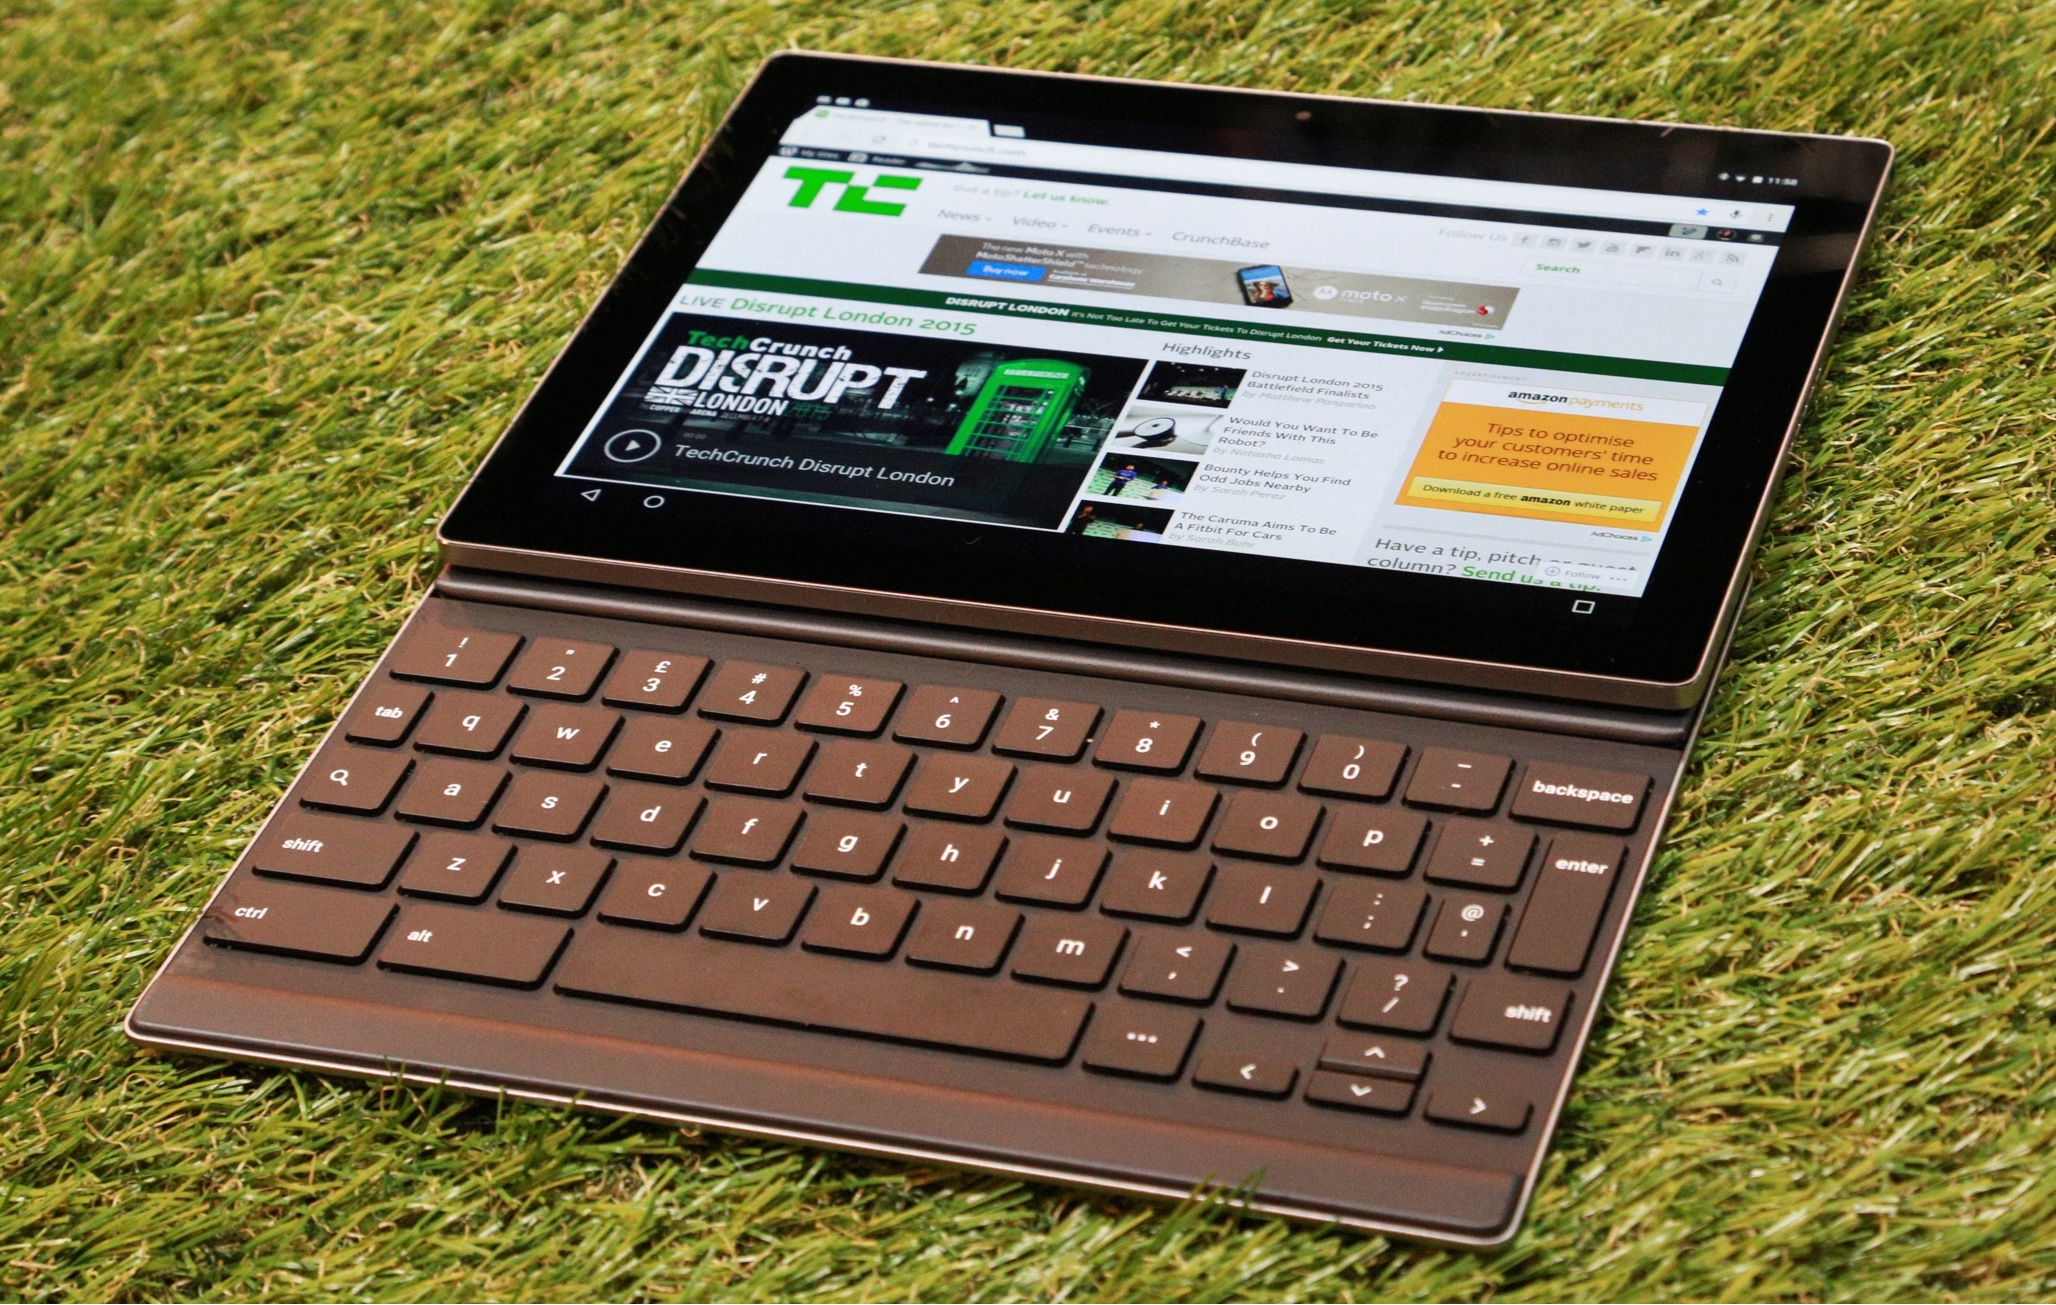 Tablet section abruptly dumped from Google's Android website